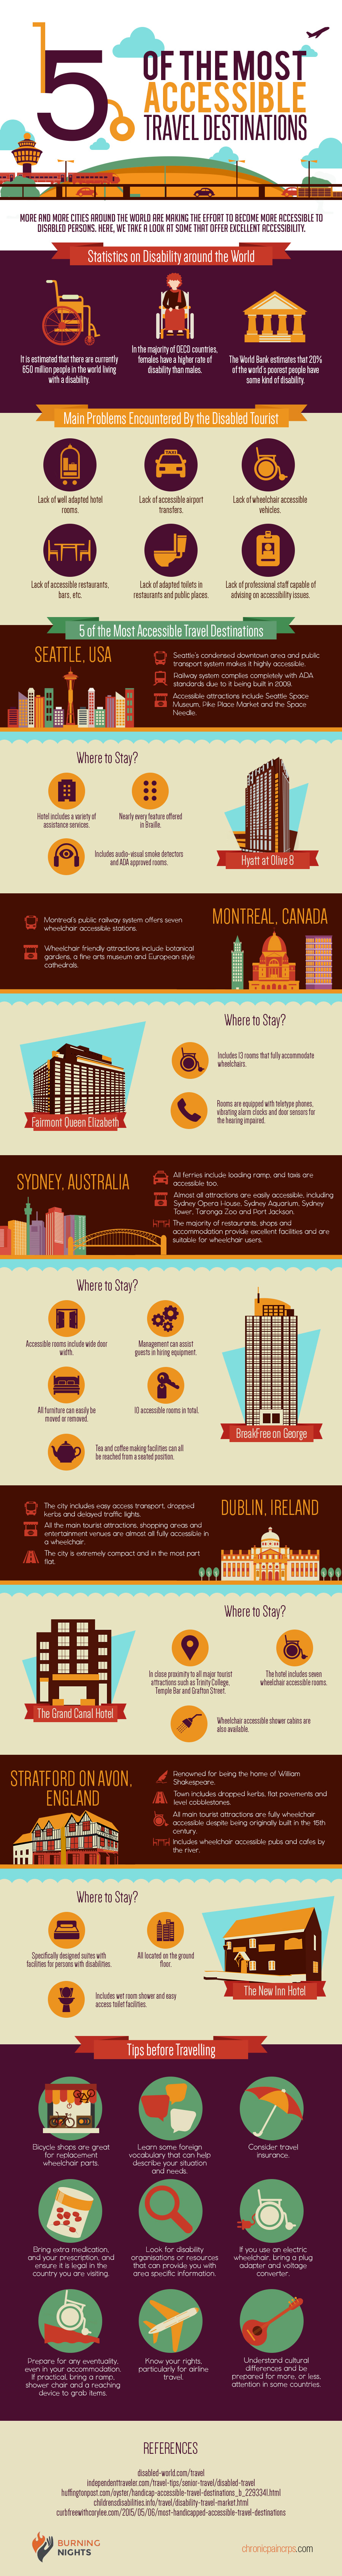 Five-of-the-most-accessible-travel-destinations-Infographic (2)